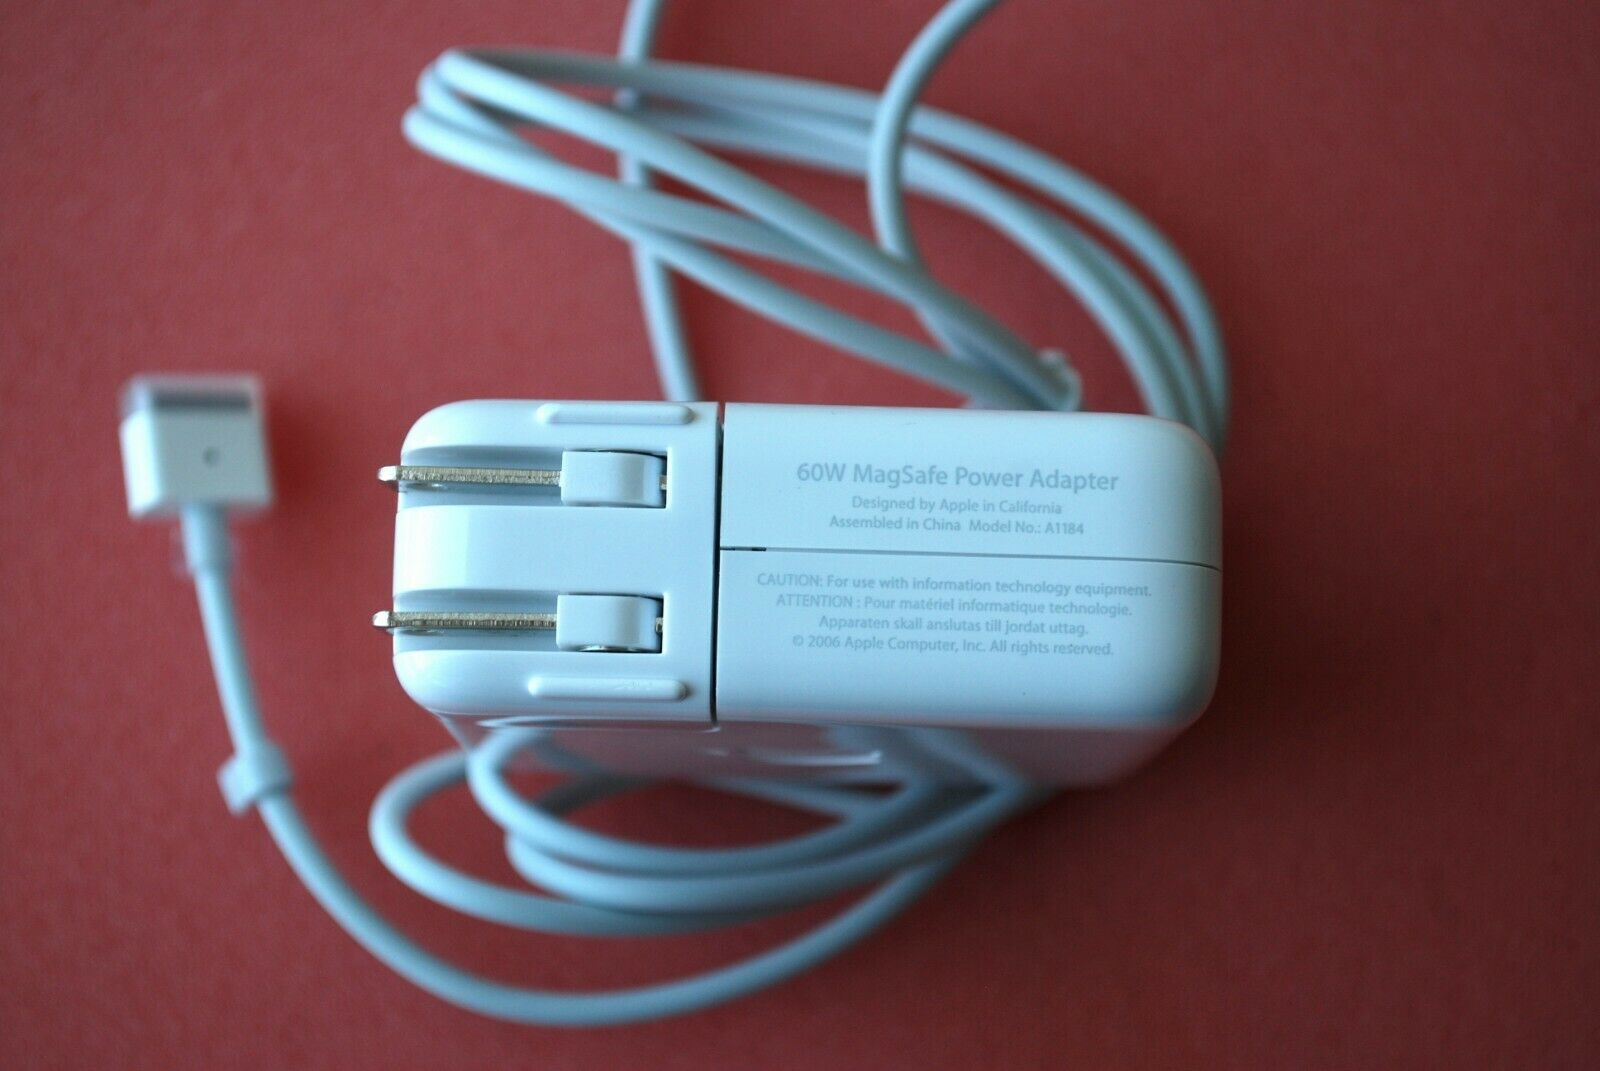 X55A Brand New Genuine Apple A1184 MagSafe 1 60W Power Adapter 611-0465